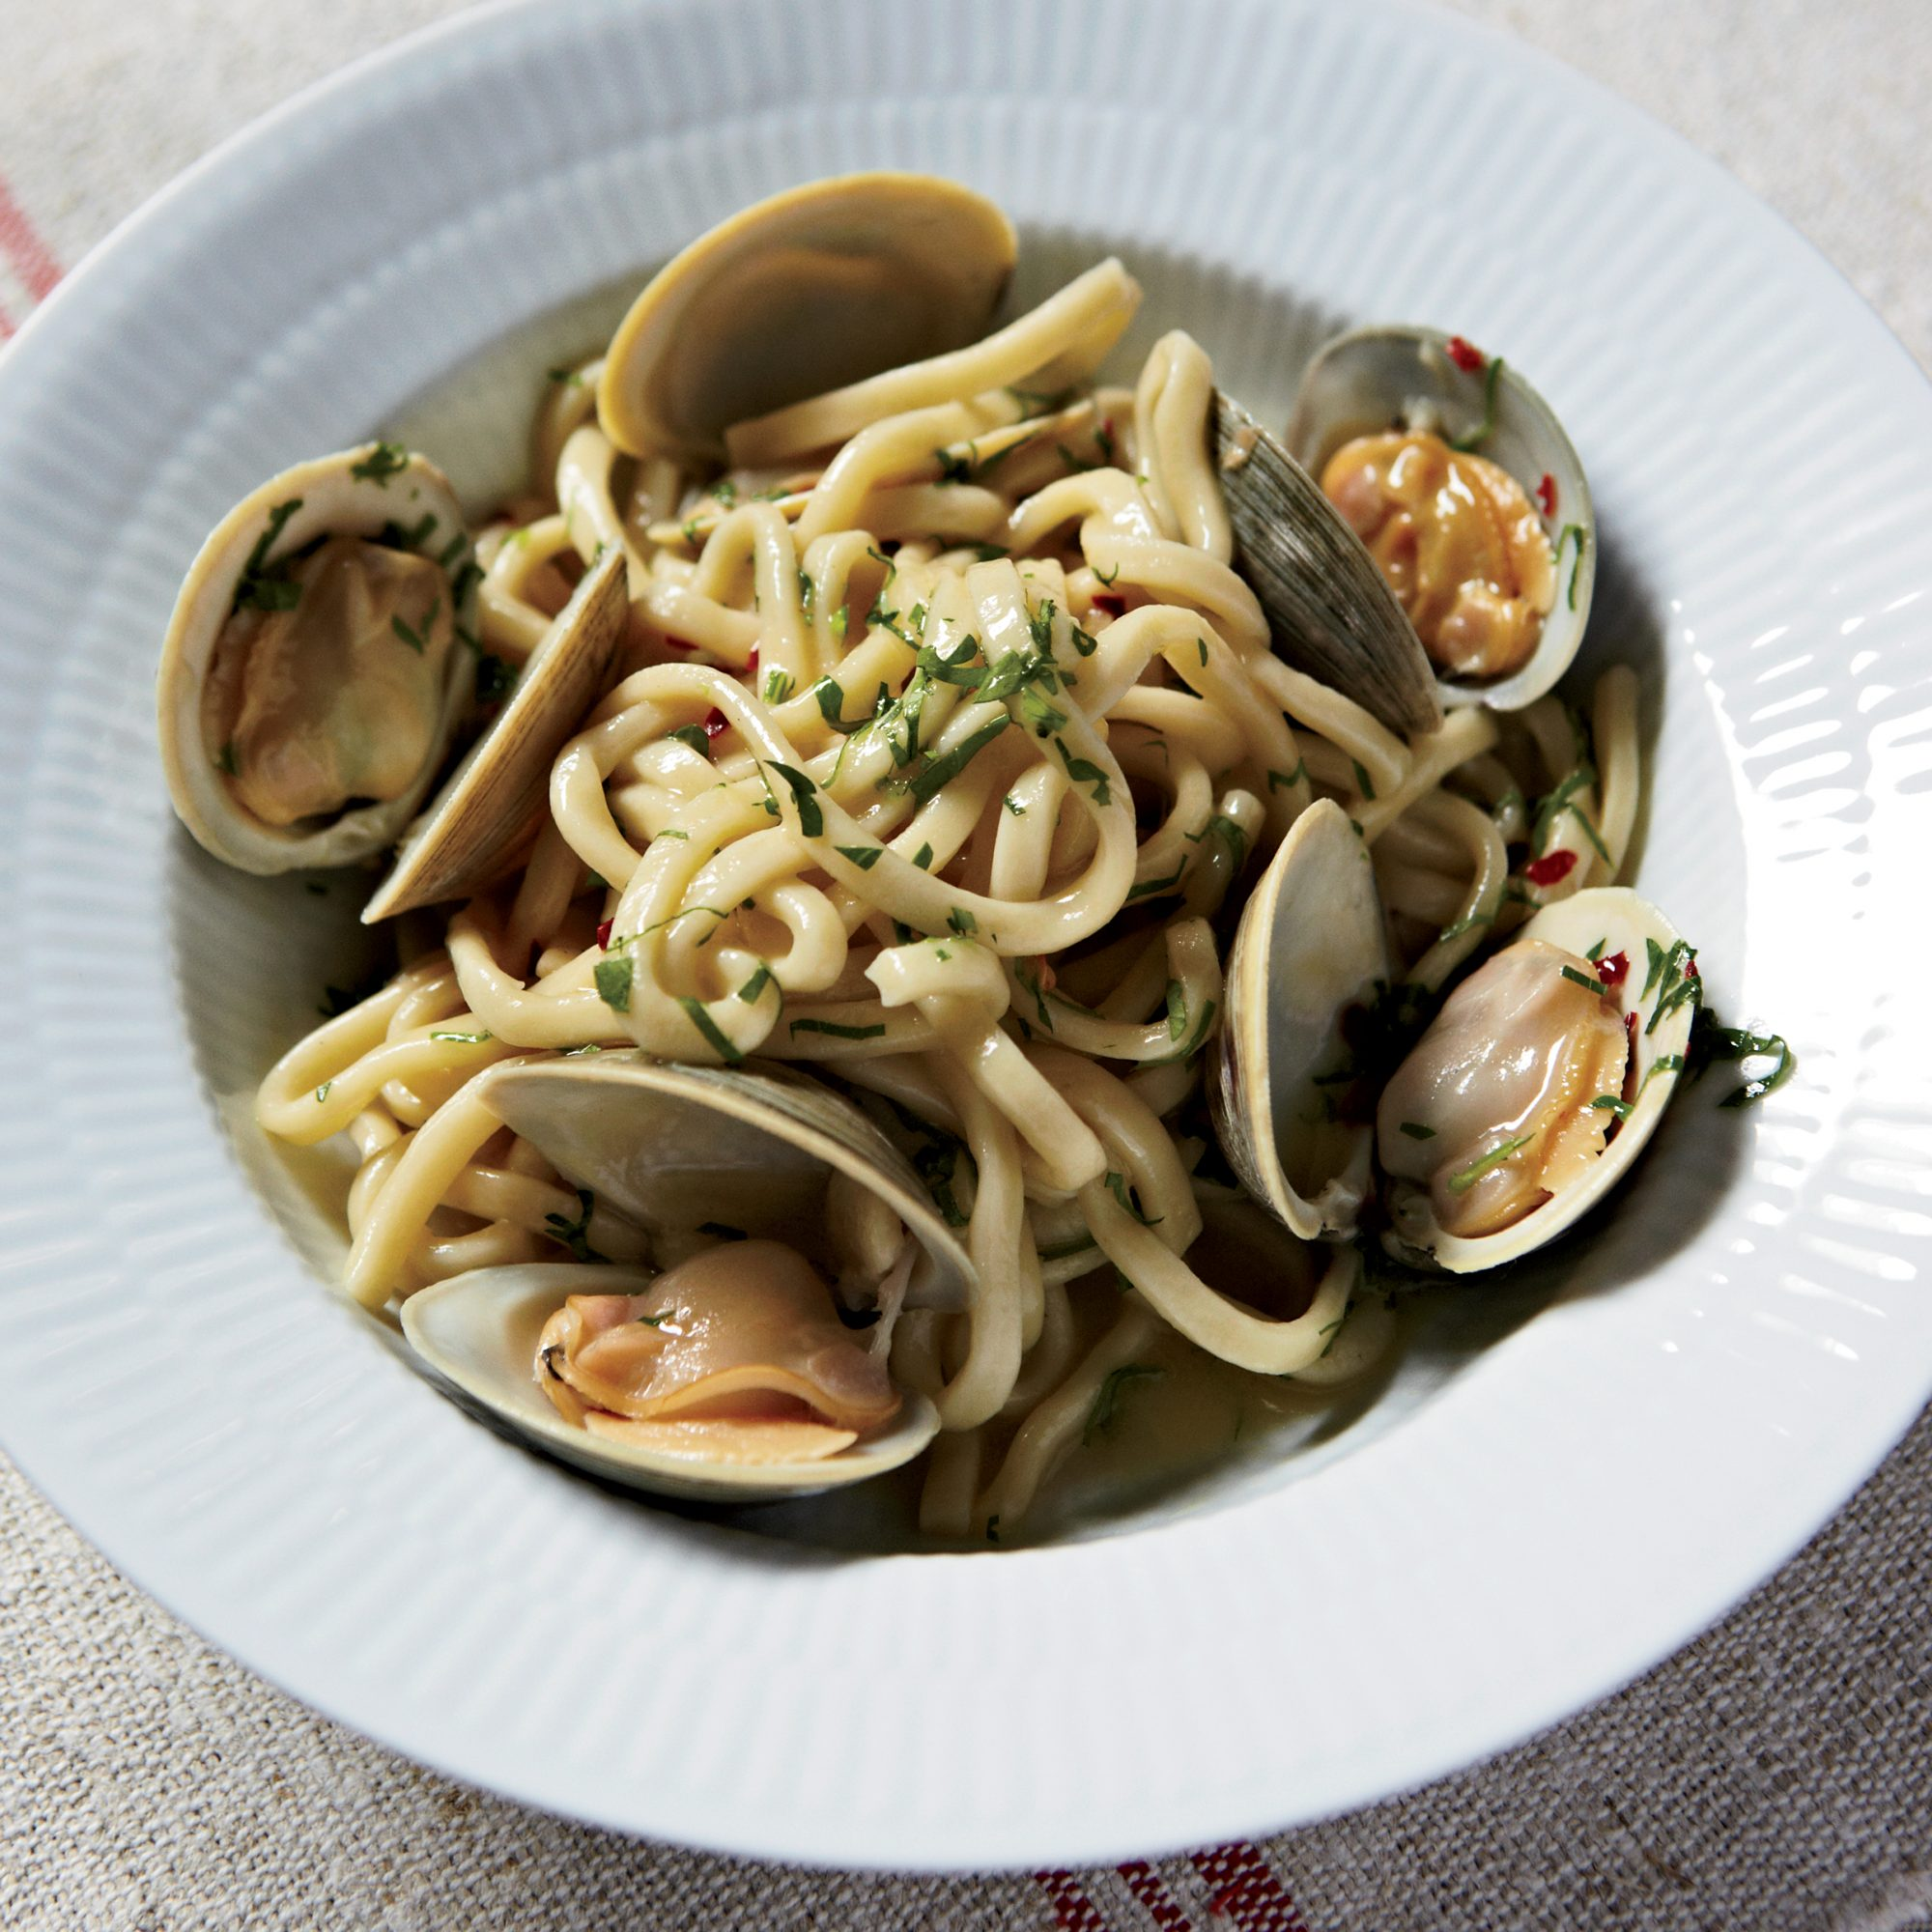 How to Mince Garlic: Spaghetti with Clams and Garlic